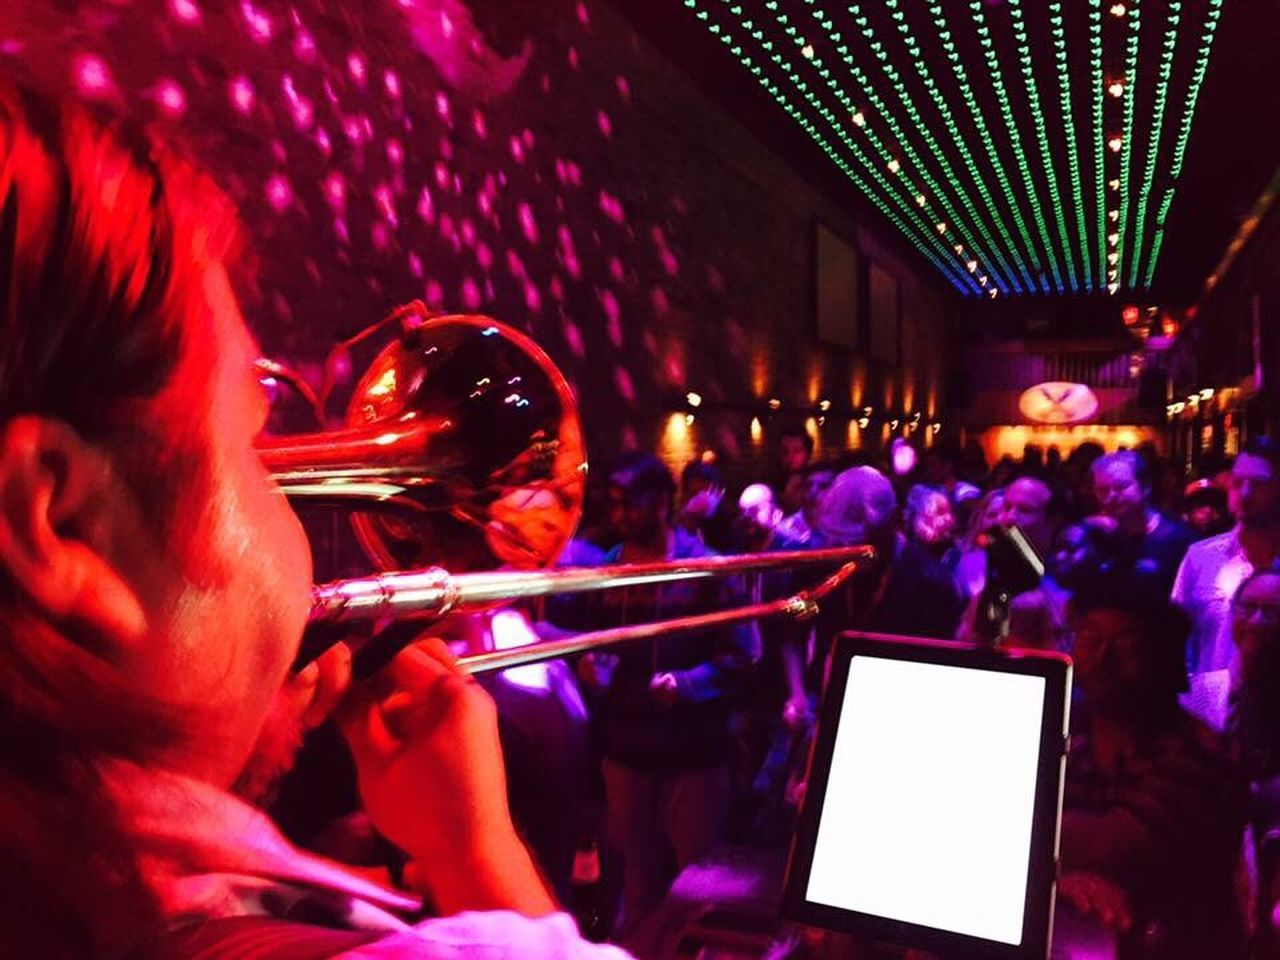 Music brings us together Arts Culture And Entertainment Music Brings Us Together Music Horn Brass Instruments Nightclub Concert